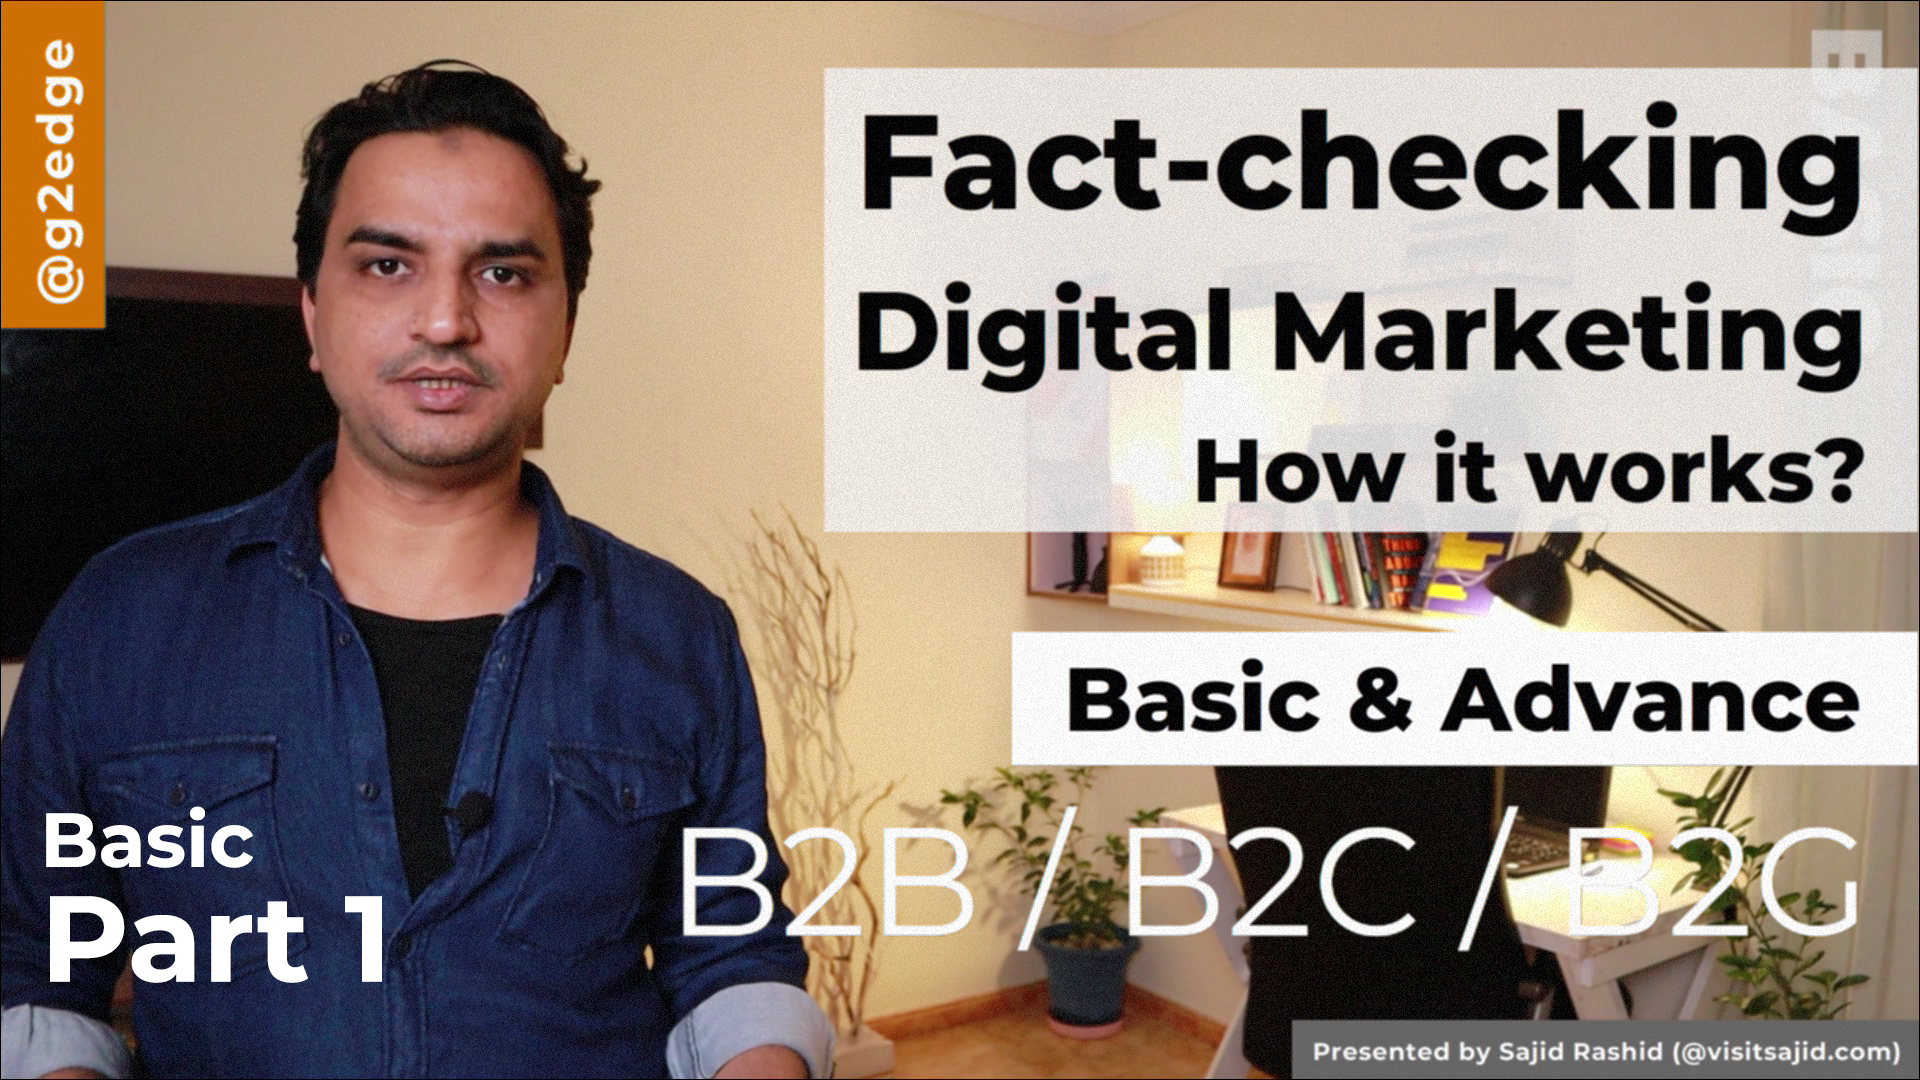 Fact-Checking Digital Marketing Basic Part 1